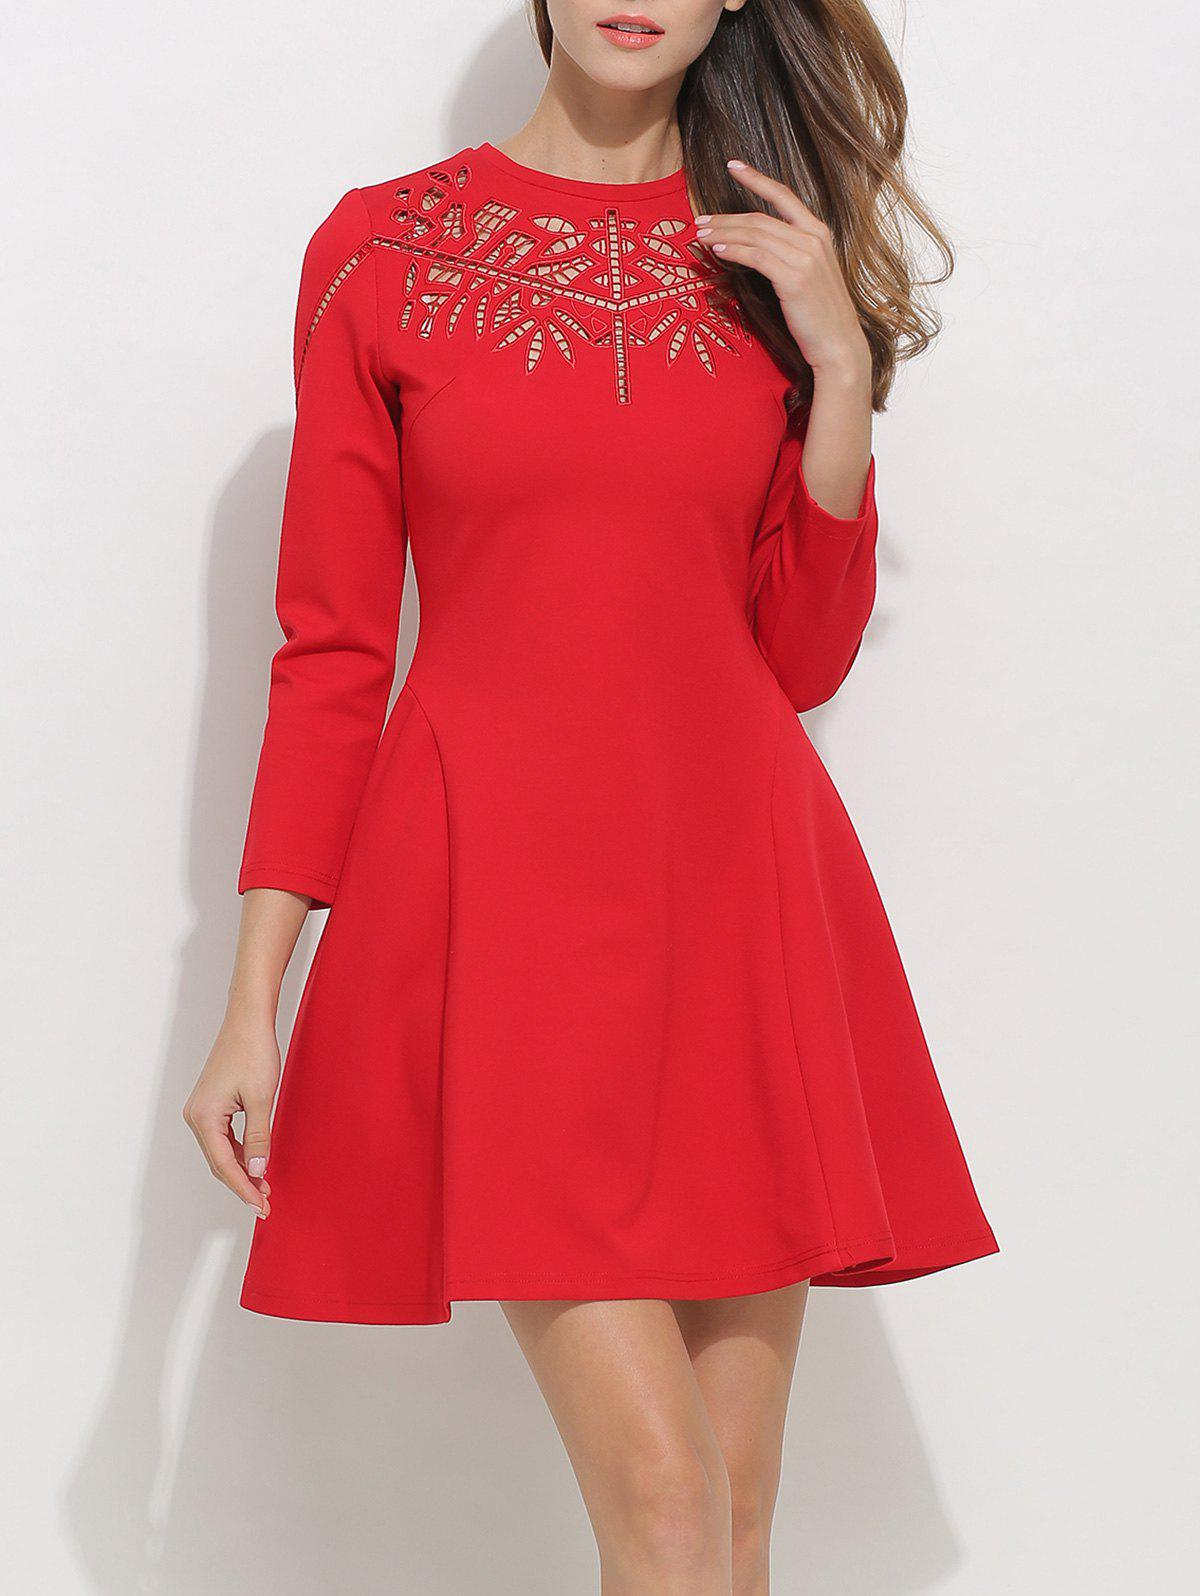 Unique Openwork Long Sleeve Fit and Flare Skater Dress